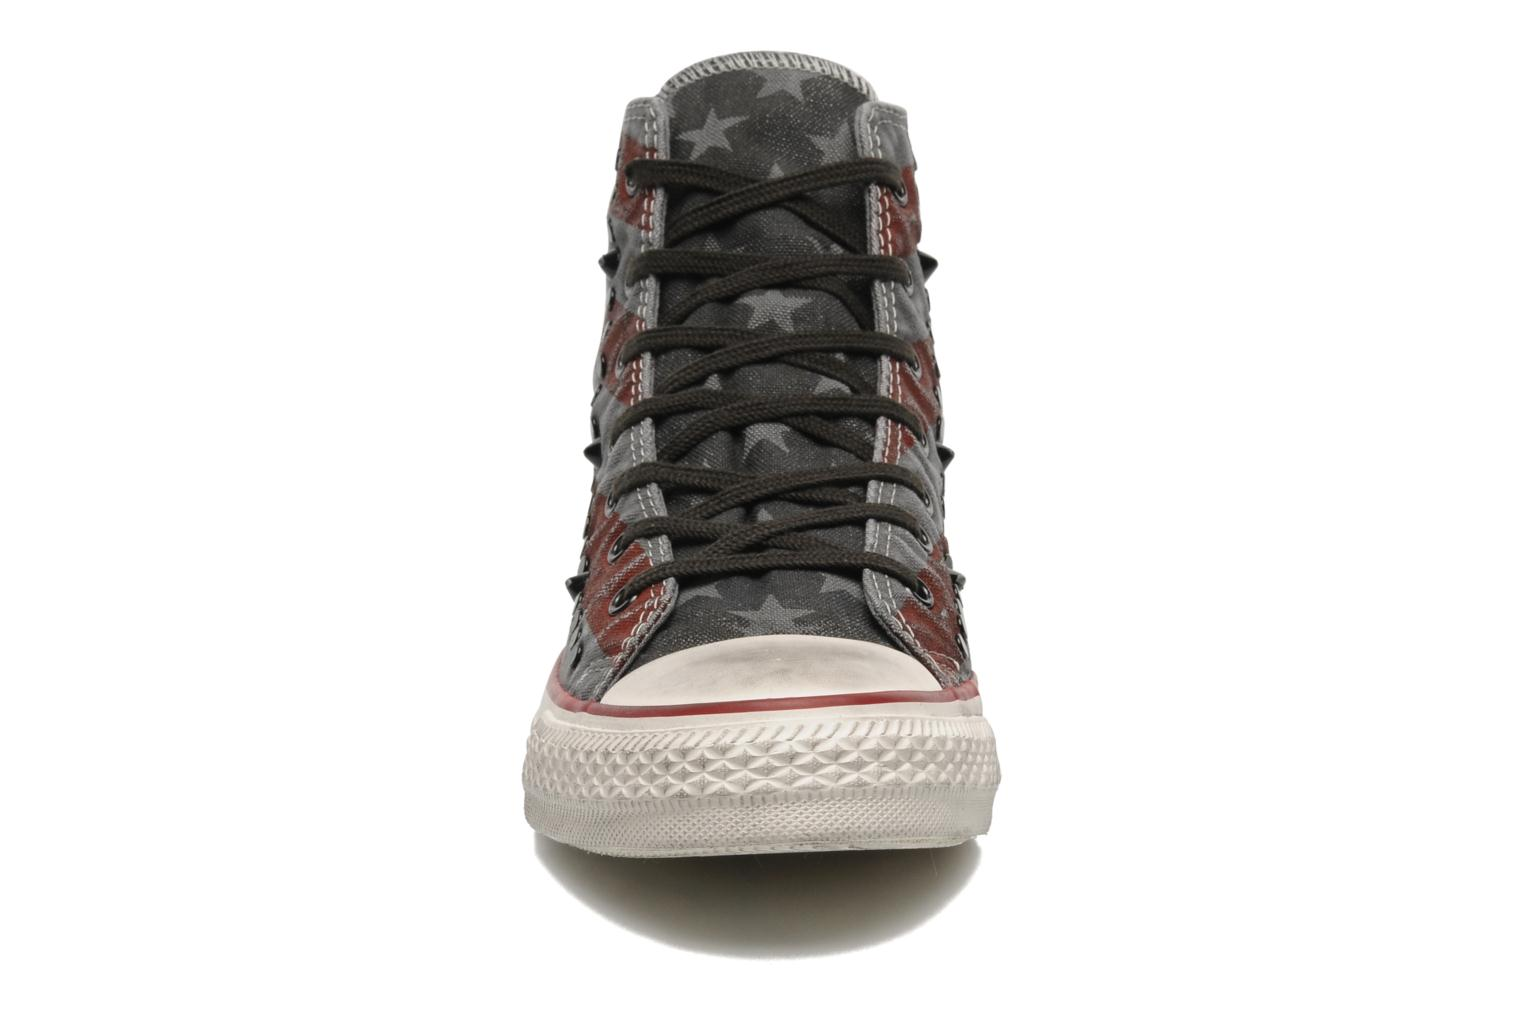 Sneakers Converse Chuck Taylor All Star Premium Washed Flag Hi W Multi se skoene på